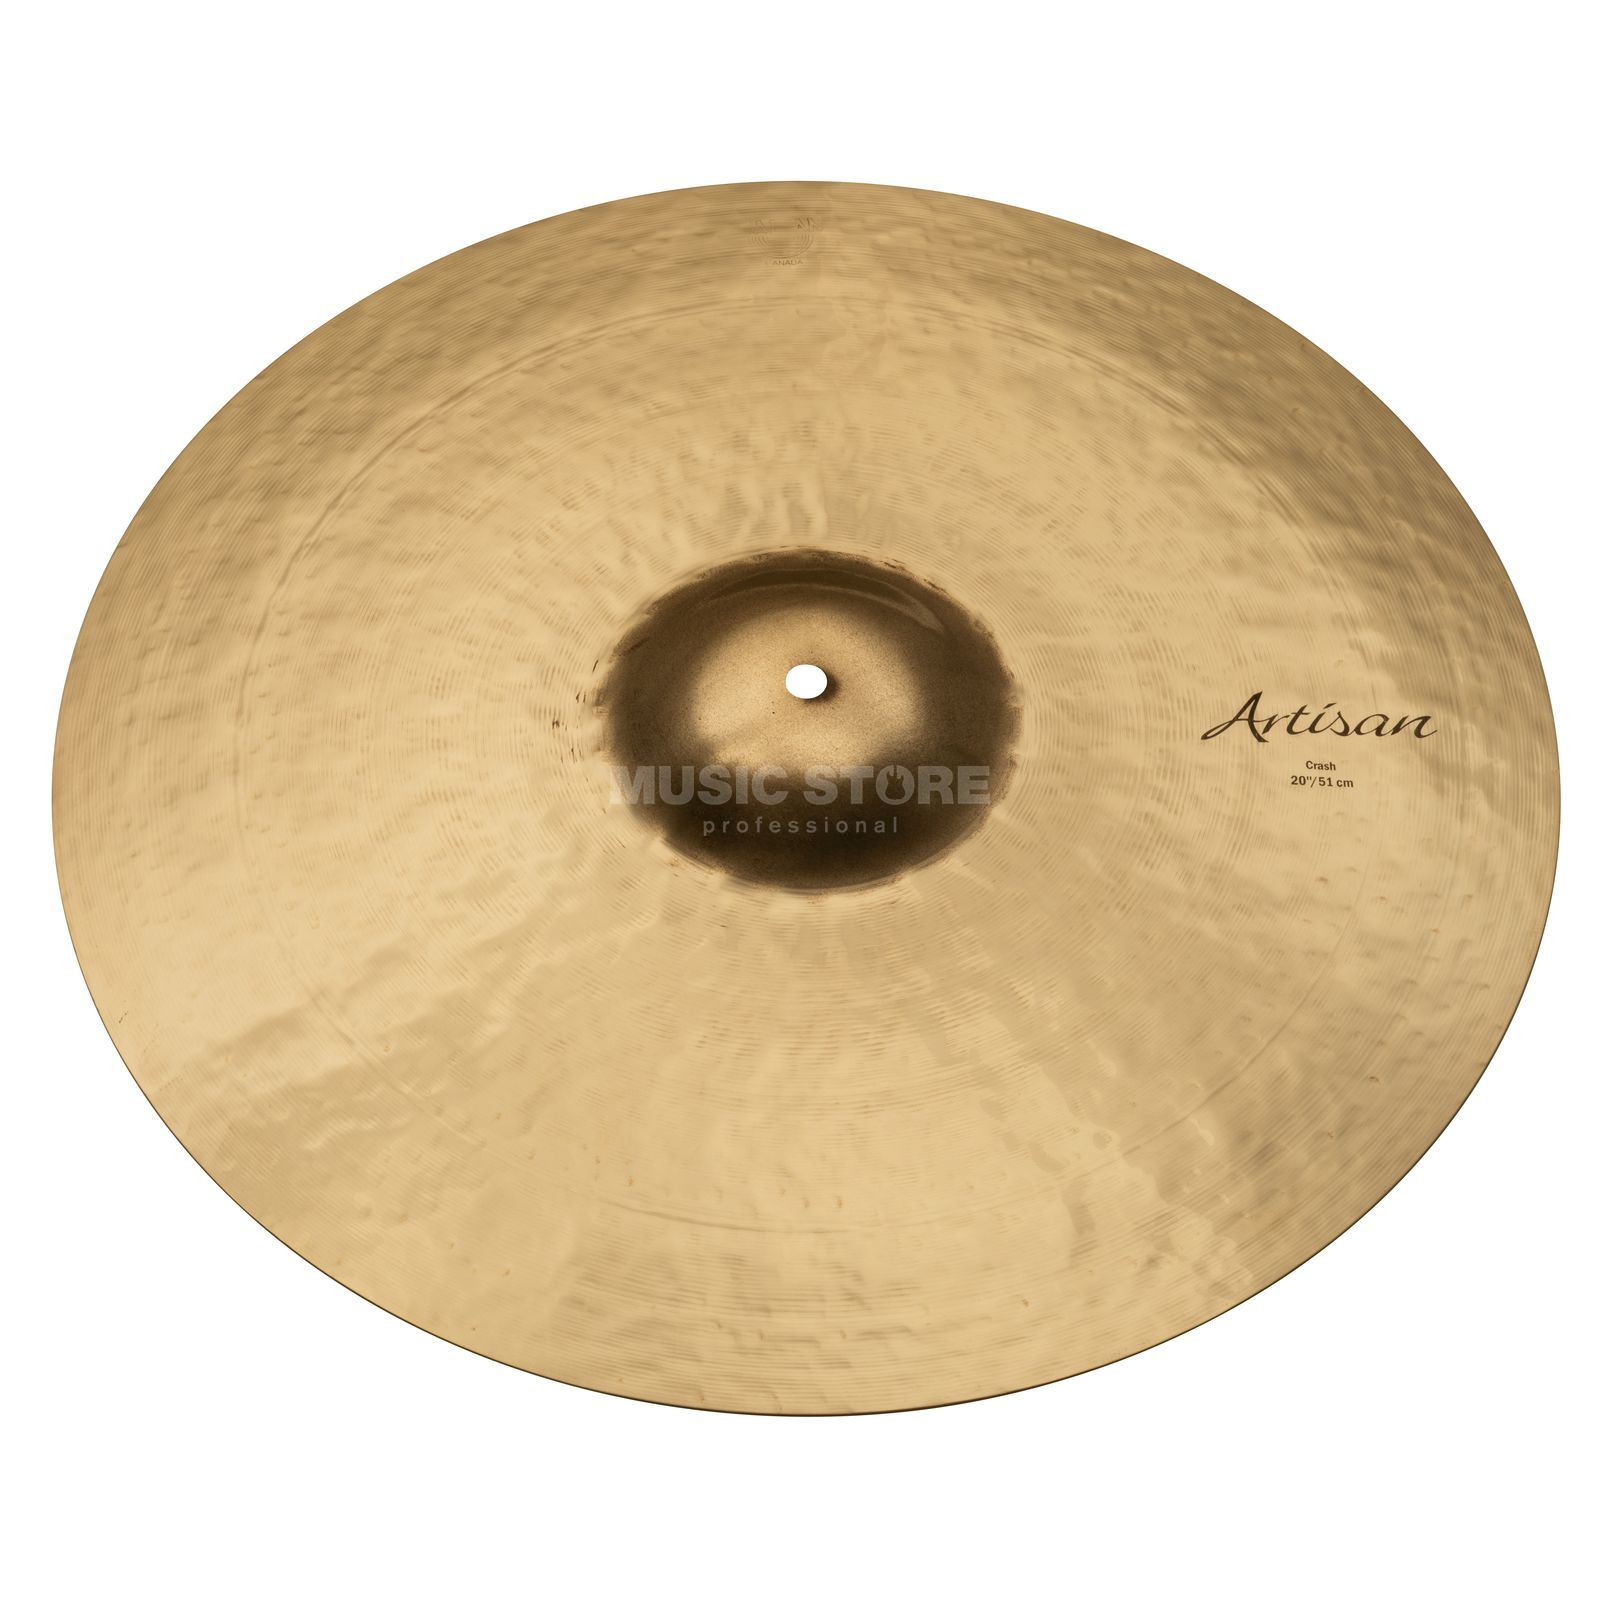 "Sabian Artisan Thin Crash 20"", finition brillante Image du produit"